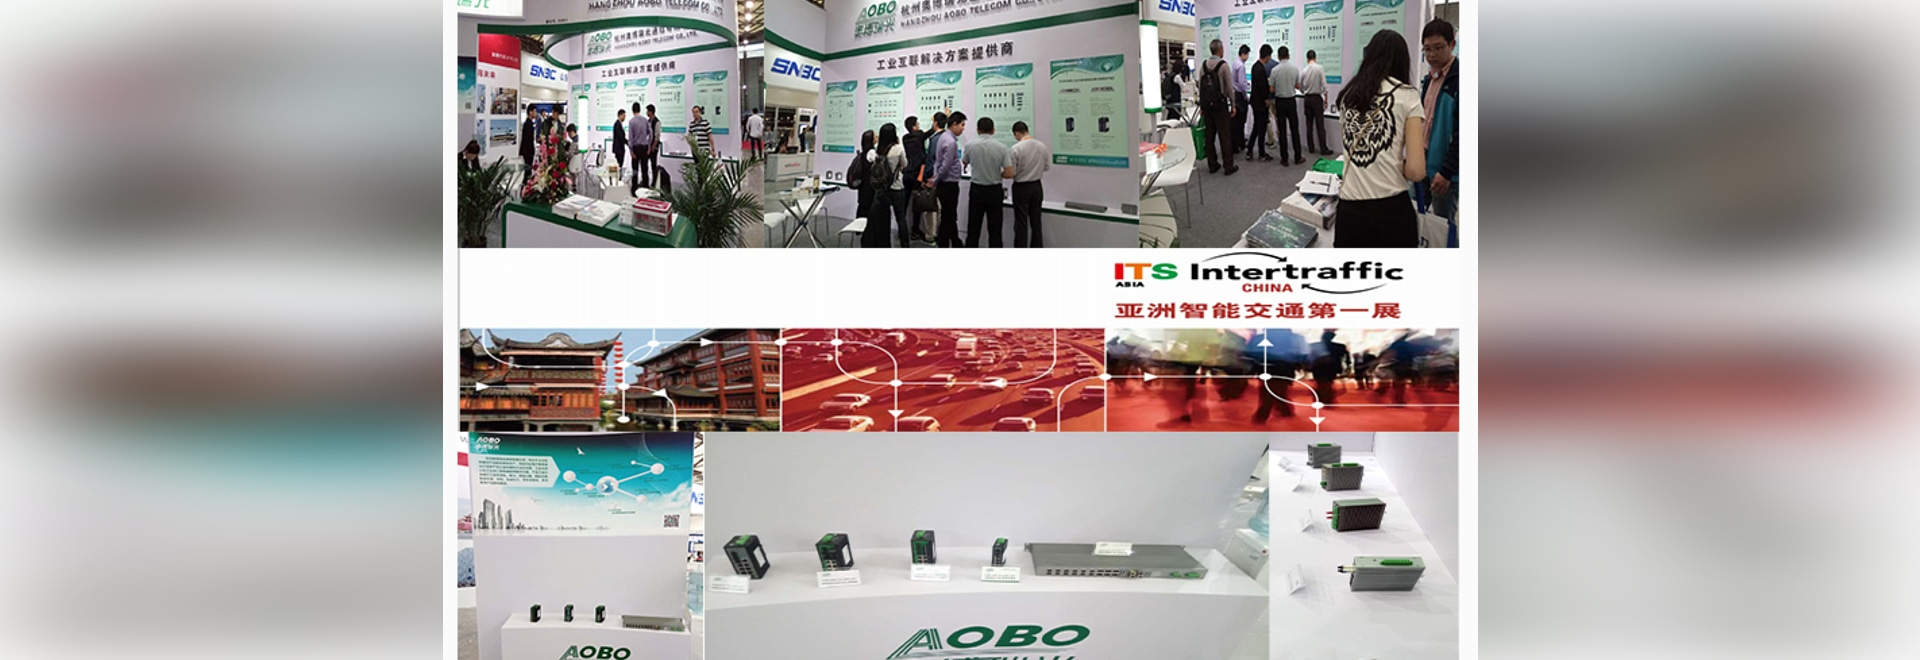 AOBO showing latest Solutions and Products at ITS Asia